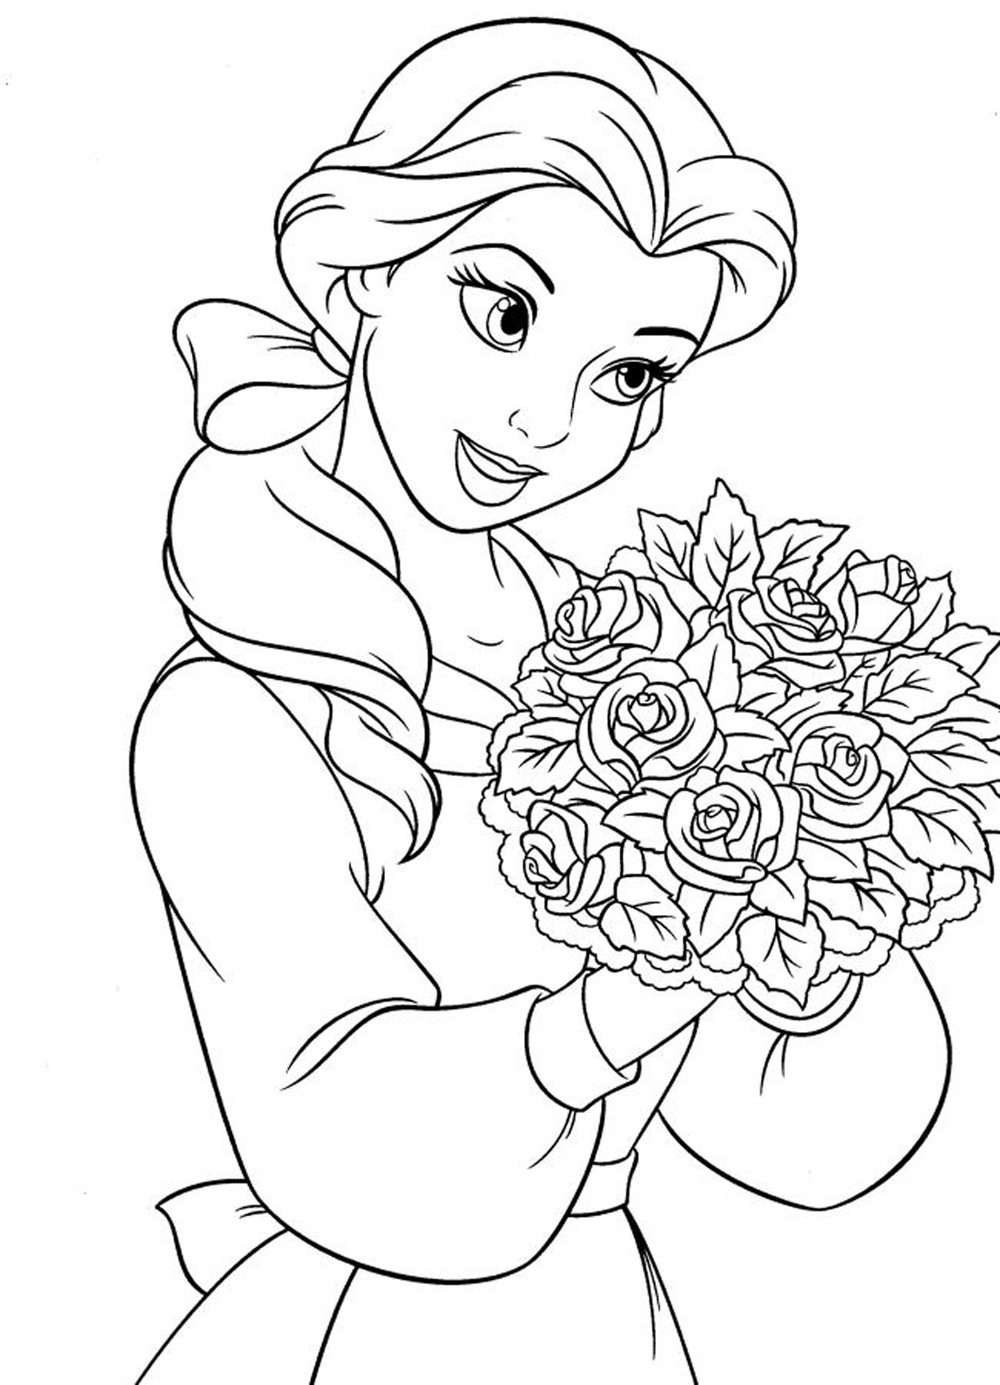 Disney Princess Coloring Pages Free Printable Disney Princess Coloring Pages For Kids